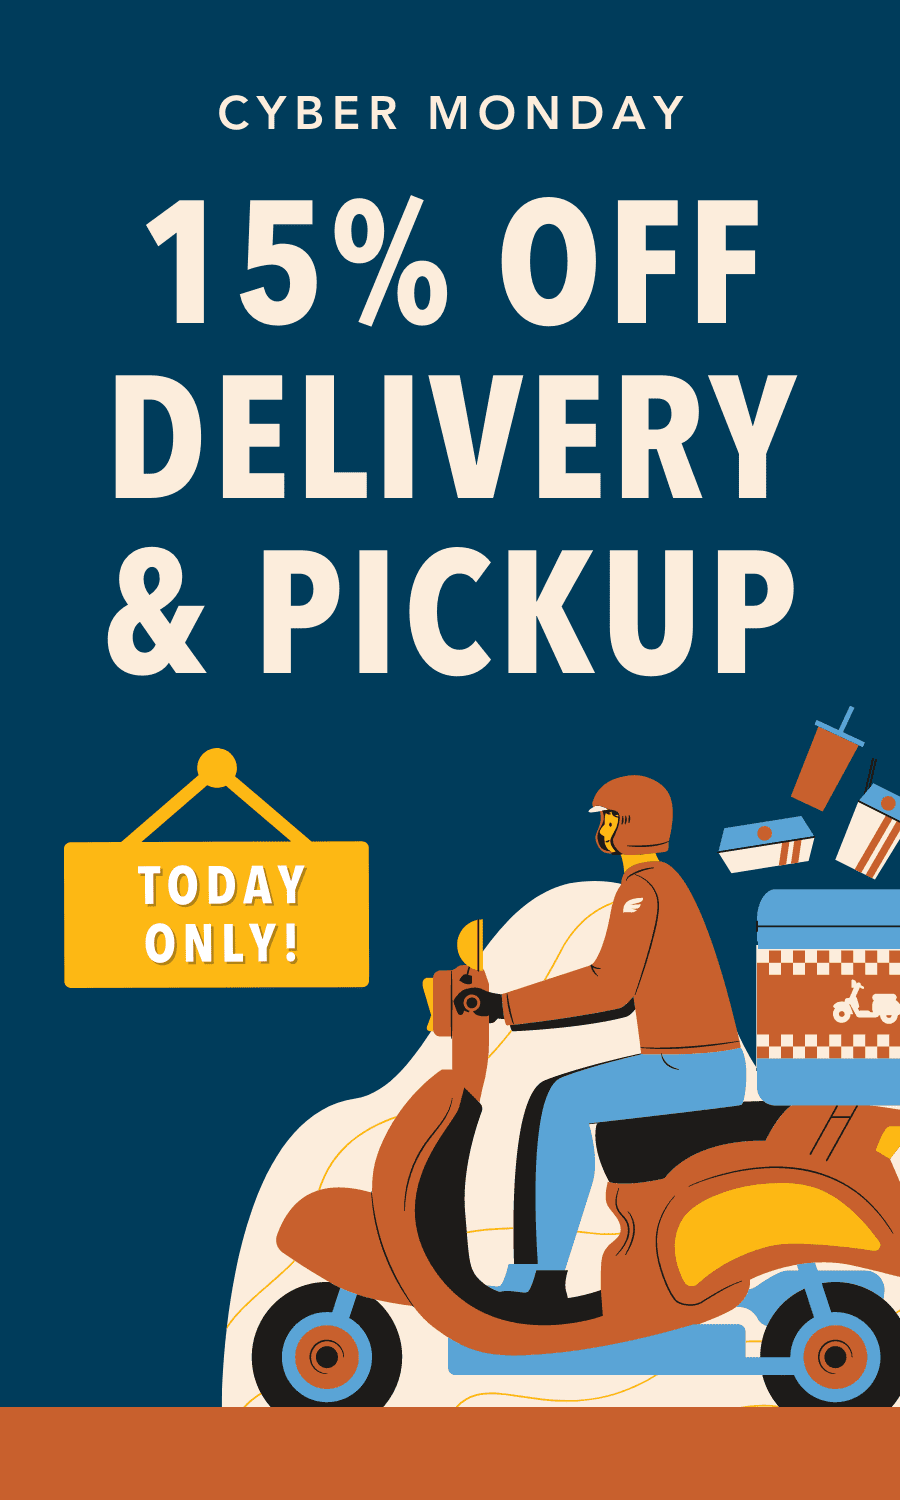 Take 15% off delivery & curbside pickup today only.